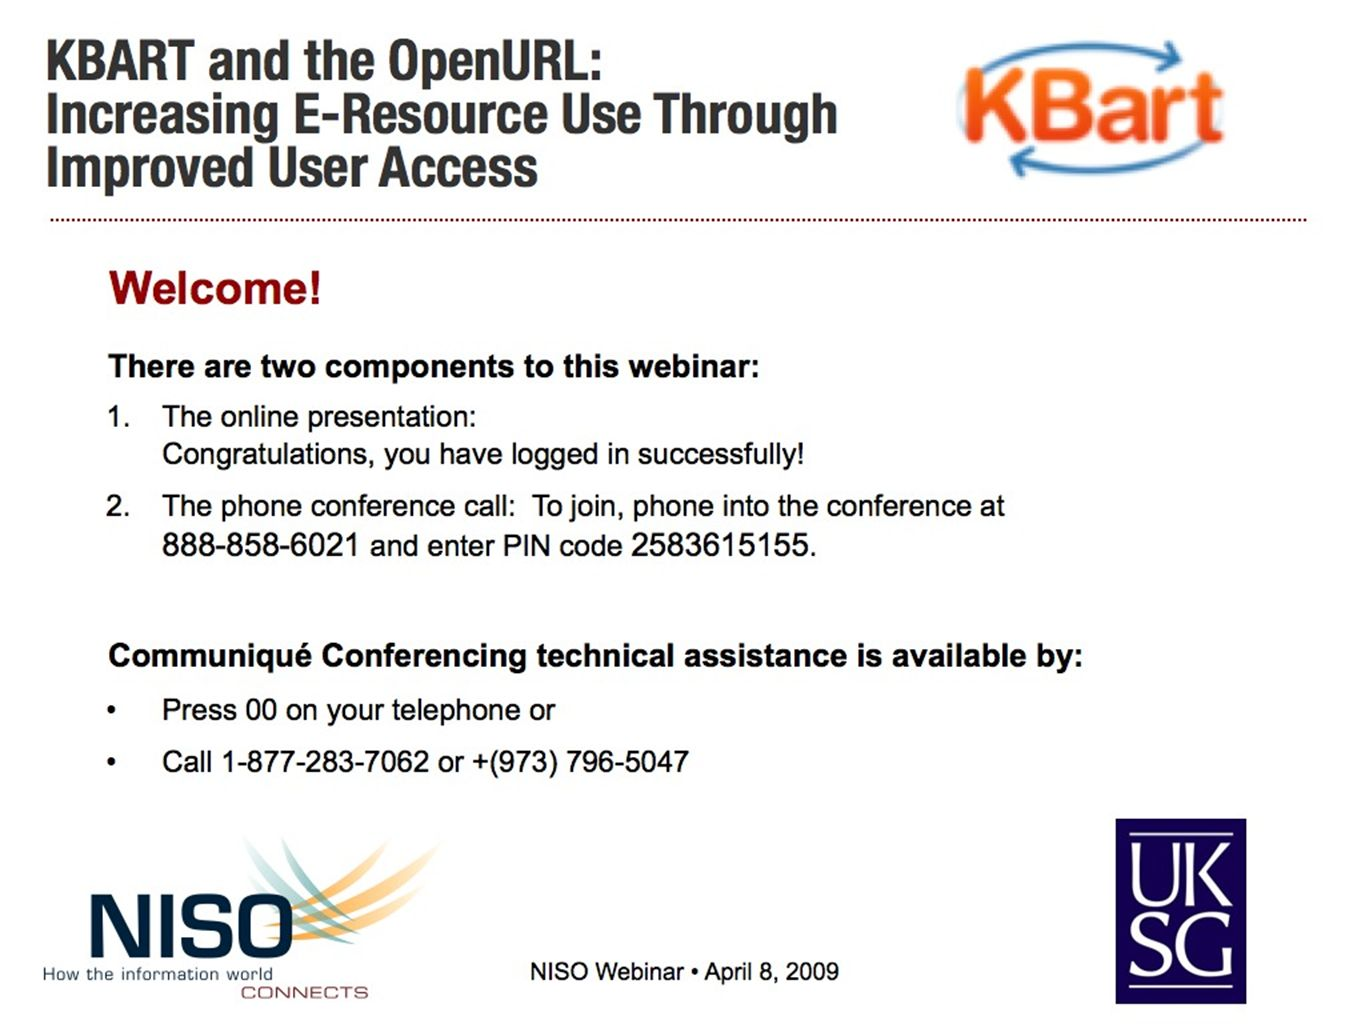 KBART: An Introduction Knowledge Bases And Related Tools UKSG and NISO collaborative project Get better data for everyone – Those who provide data (publishers, aggregators) Those who process data (link resolvers, ERMs, etc.) Those who present data (libraries, consortia) All for THOSE WHO USE DATA – library patrons Ensuring timely transfer of accurate data to knowledgebases, ERMs, etc.